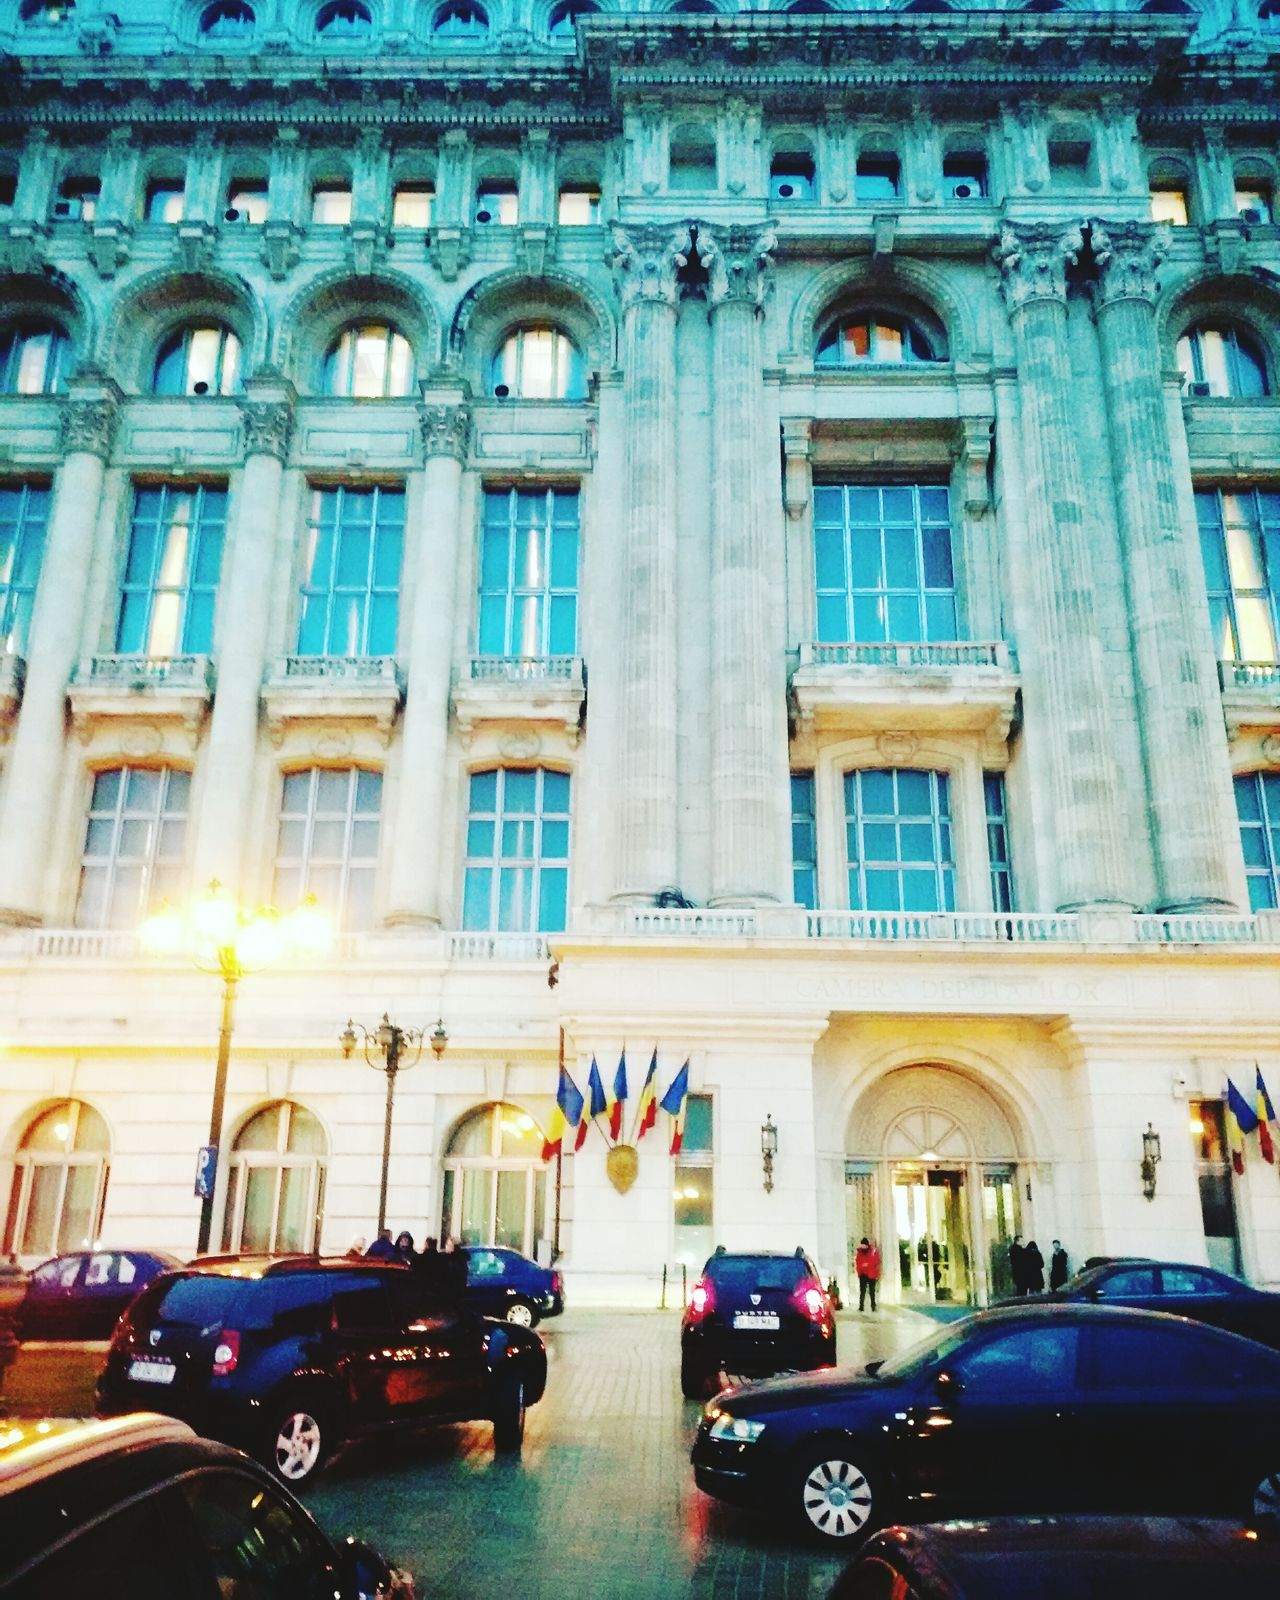 The Palace of the Parliament of Romania Building Exterior Architecture Car Transportation Built Structure Outdoors City Illuminated Yellow Taxi Travel Destinations Romaniafrumoasa Close-up EyeEm Gallery Eyeem Best Shot Night Tourism Party - Social Event